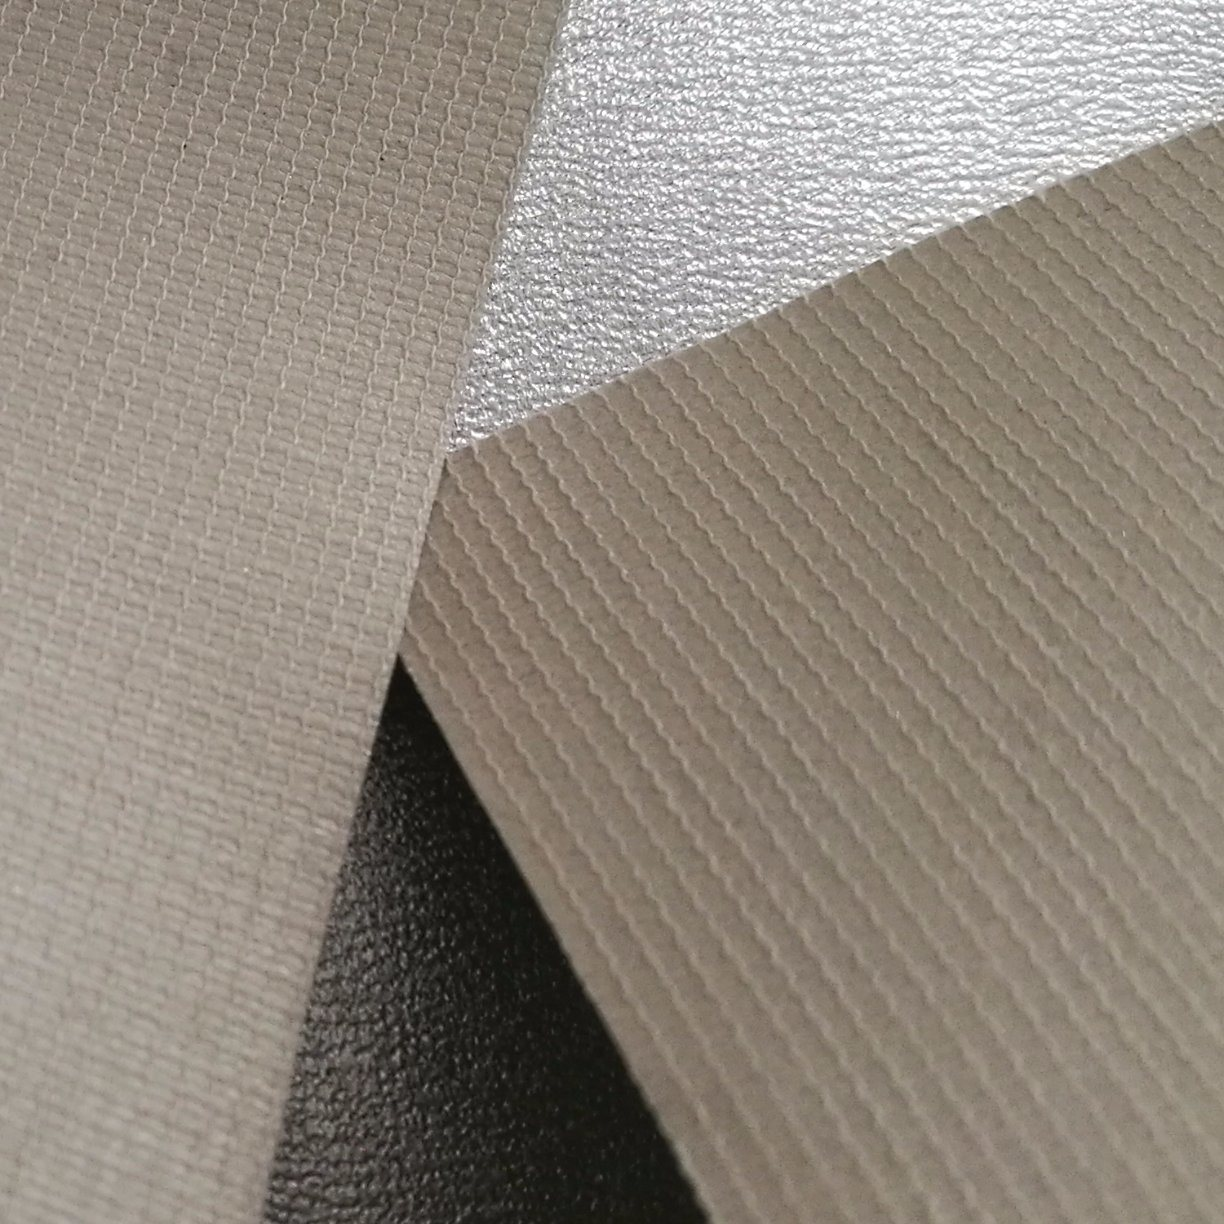 SGS Certification, Silver Metallic Luster, Soft Leather, PVC Leather